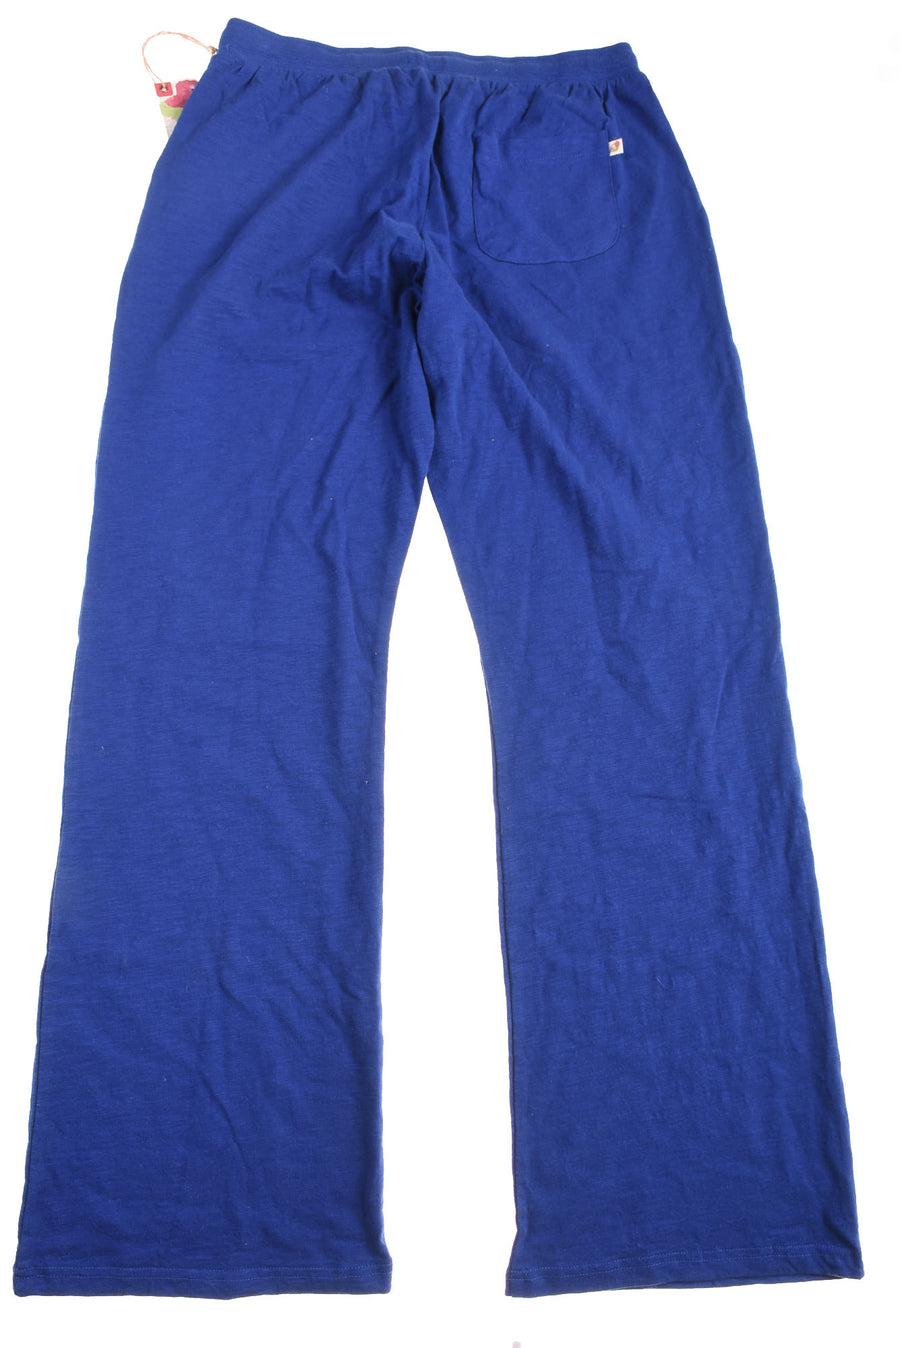 NEW Margaritaville Women's Pants Medium Soldalite Blue